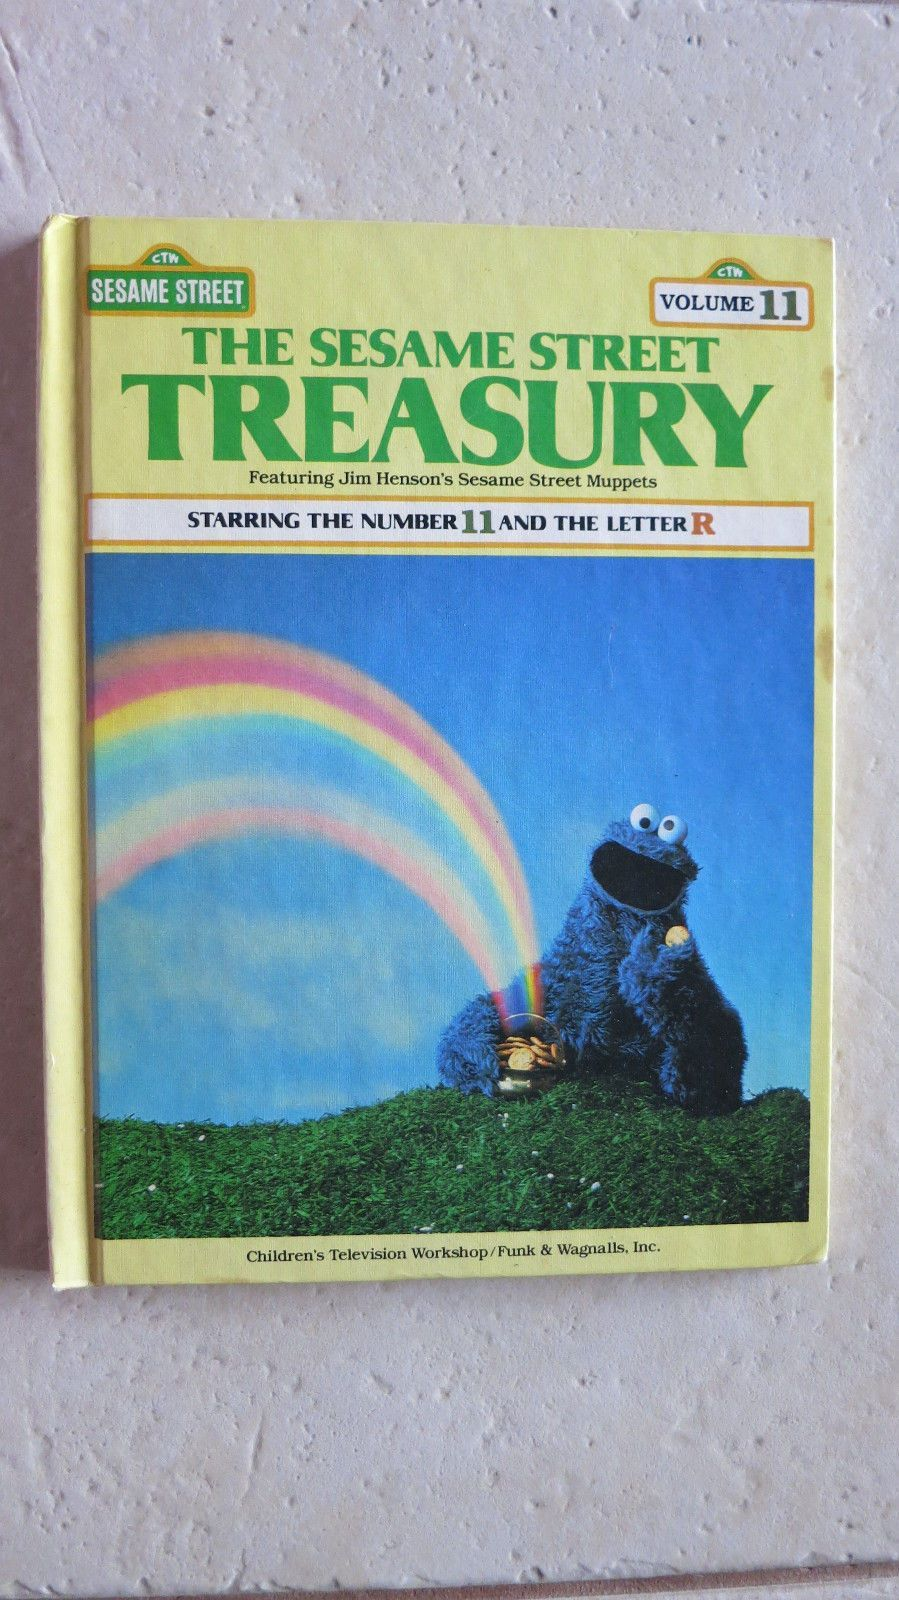 The sesame street treasury vol 11 starring the number 11 and the letter r book